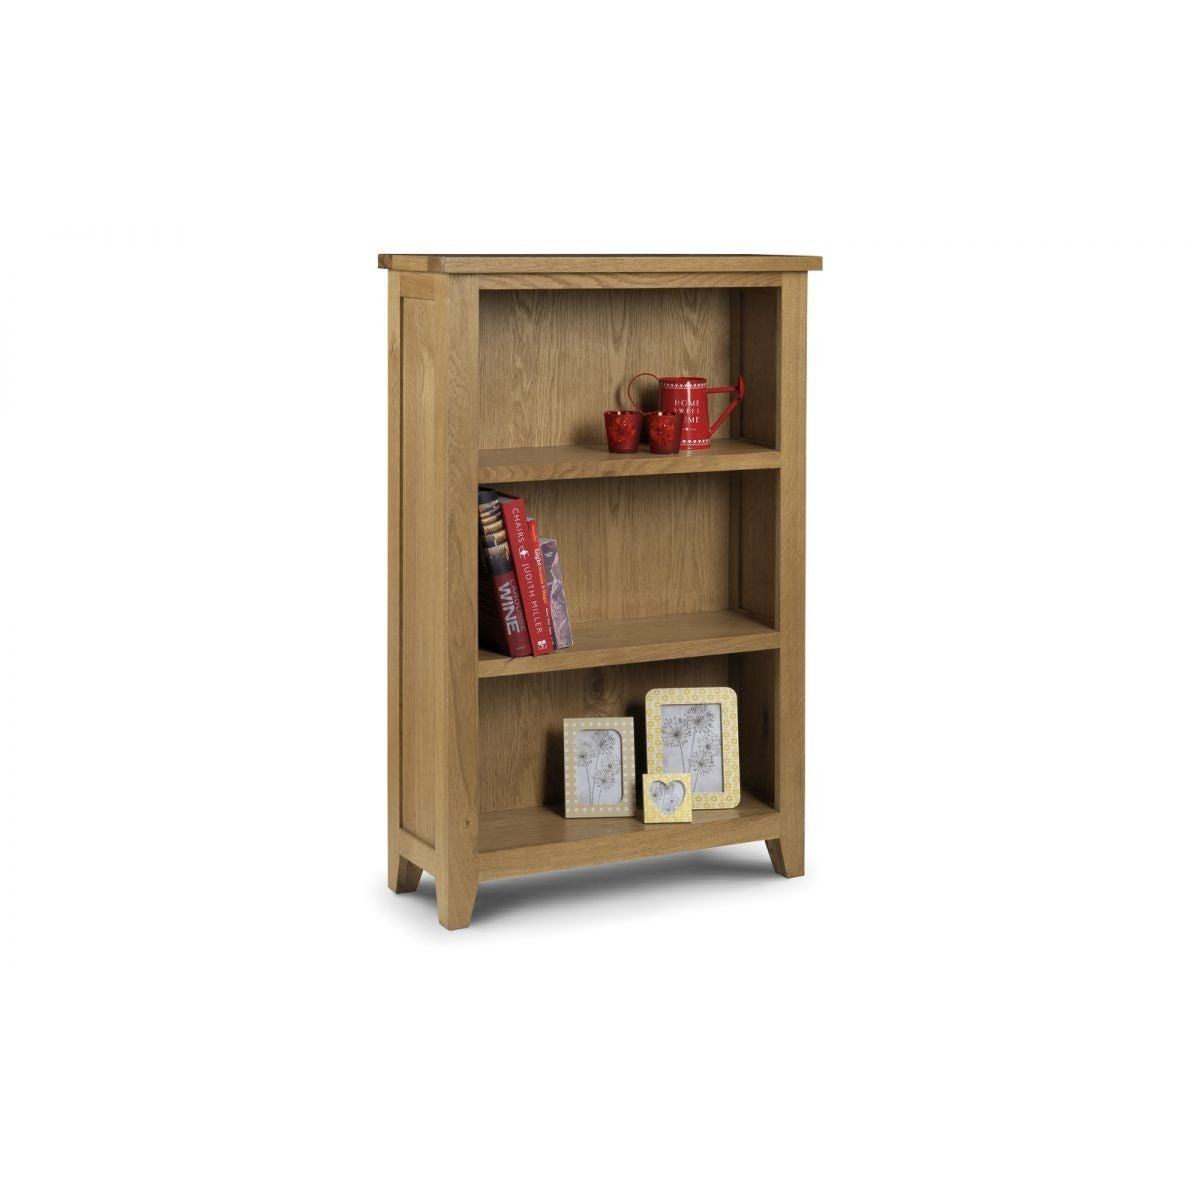 Astoria Oak Low Bookcase - Perfectly Home Interiors